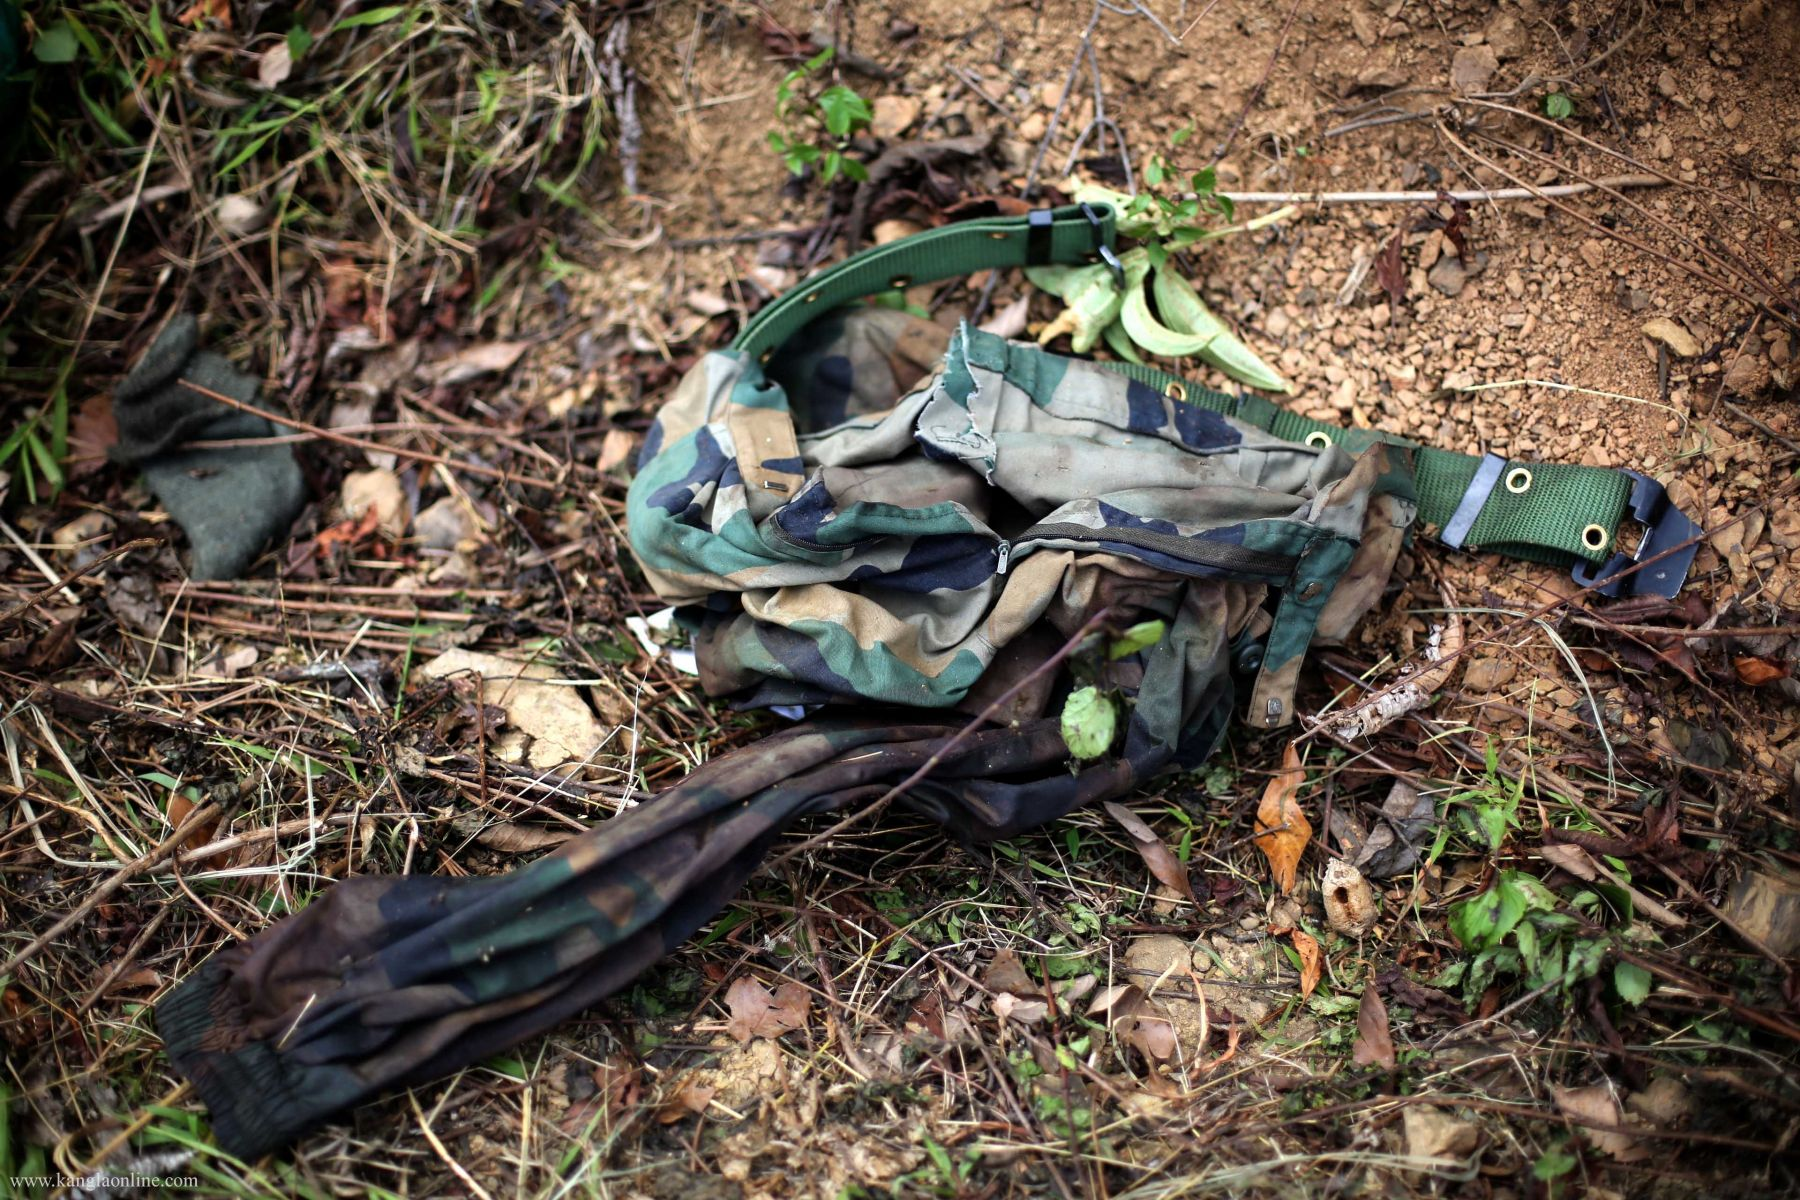 Uniform  of one of the deceased Indian Army at Paraolon, Chandel District, Manipur. photo by Deepak Shijagurumayum.